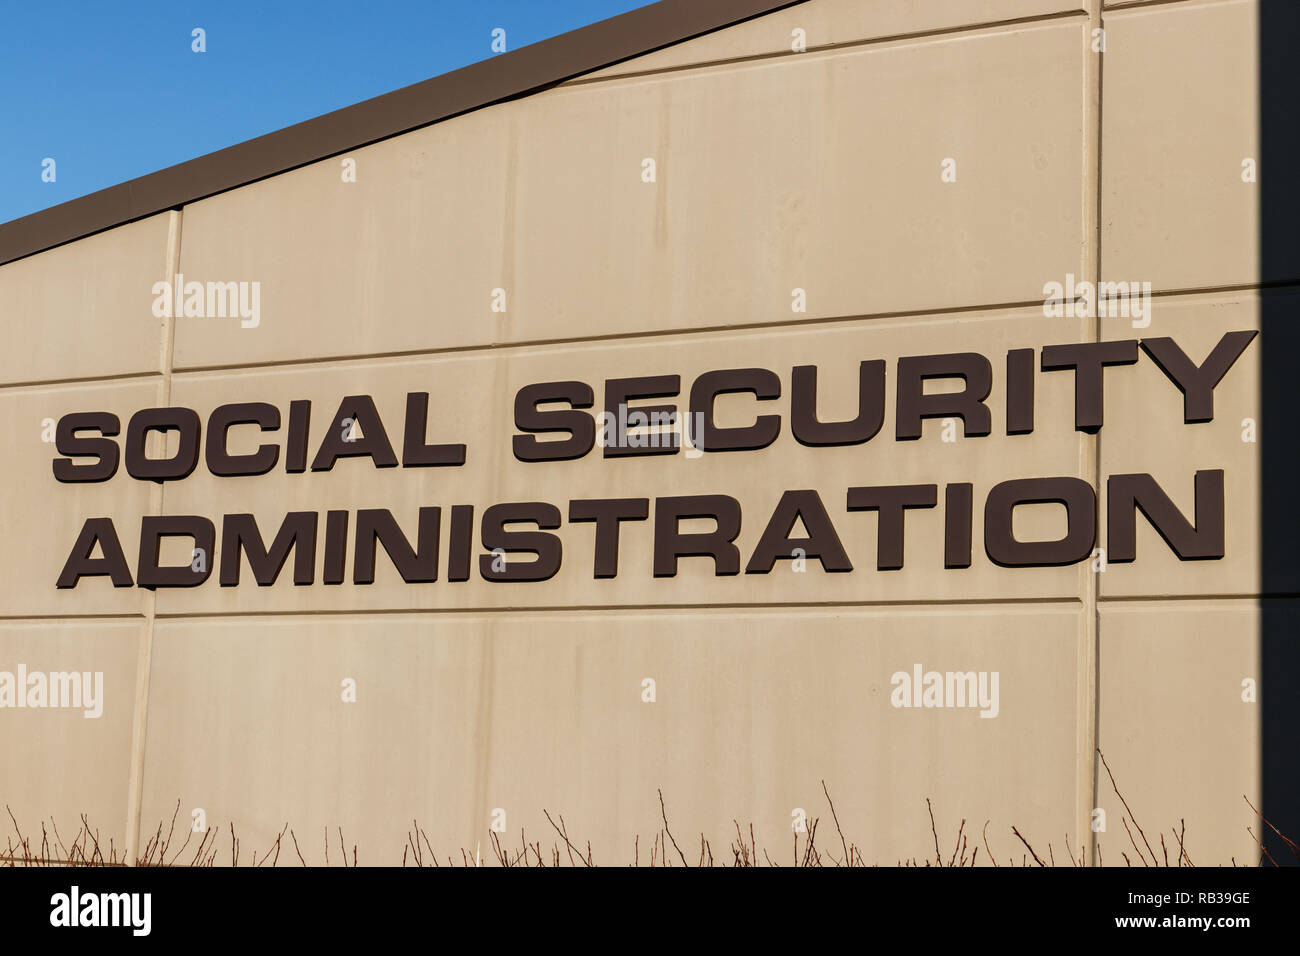 Ssi Benefits Stock Photos & Ssi Benefits Stock Images - Alamy